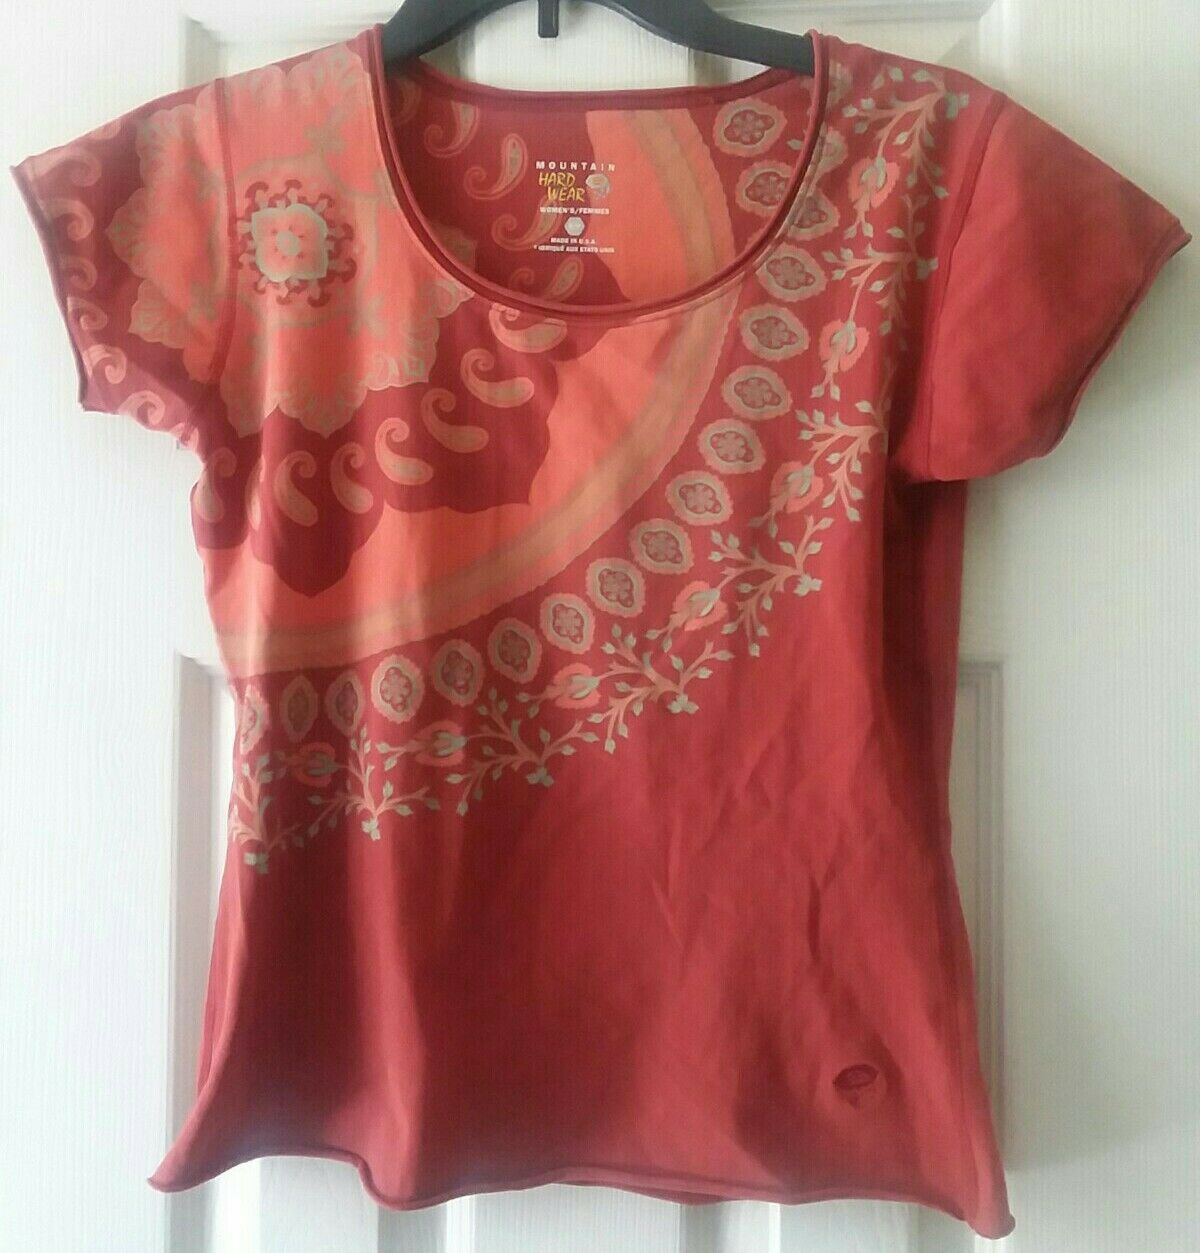 Mountain Hard Wear Red Patterned Top Size Women's Adult Small